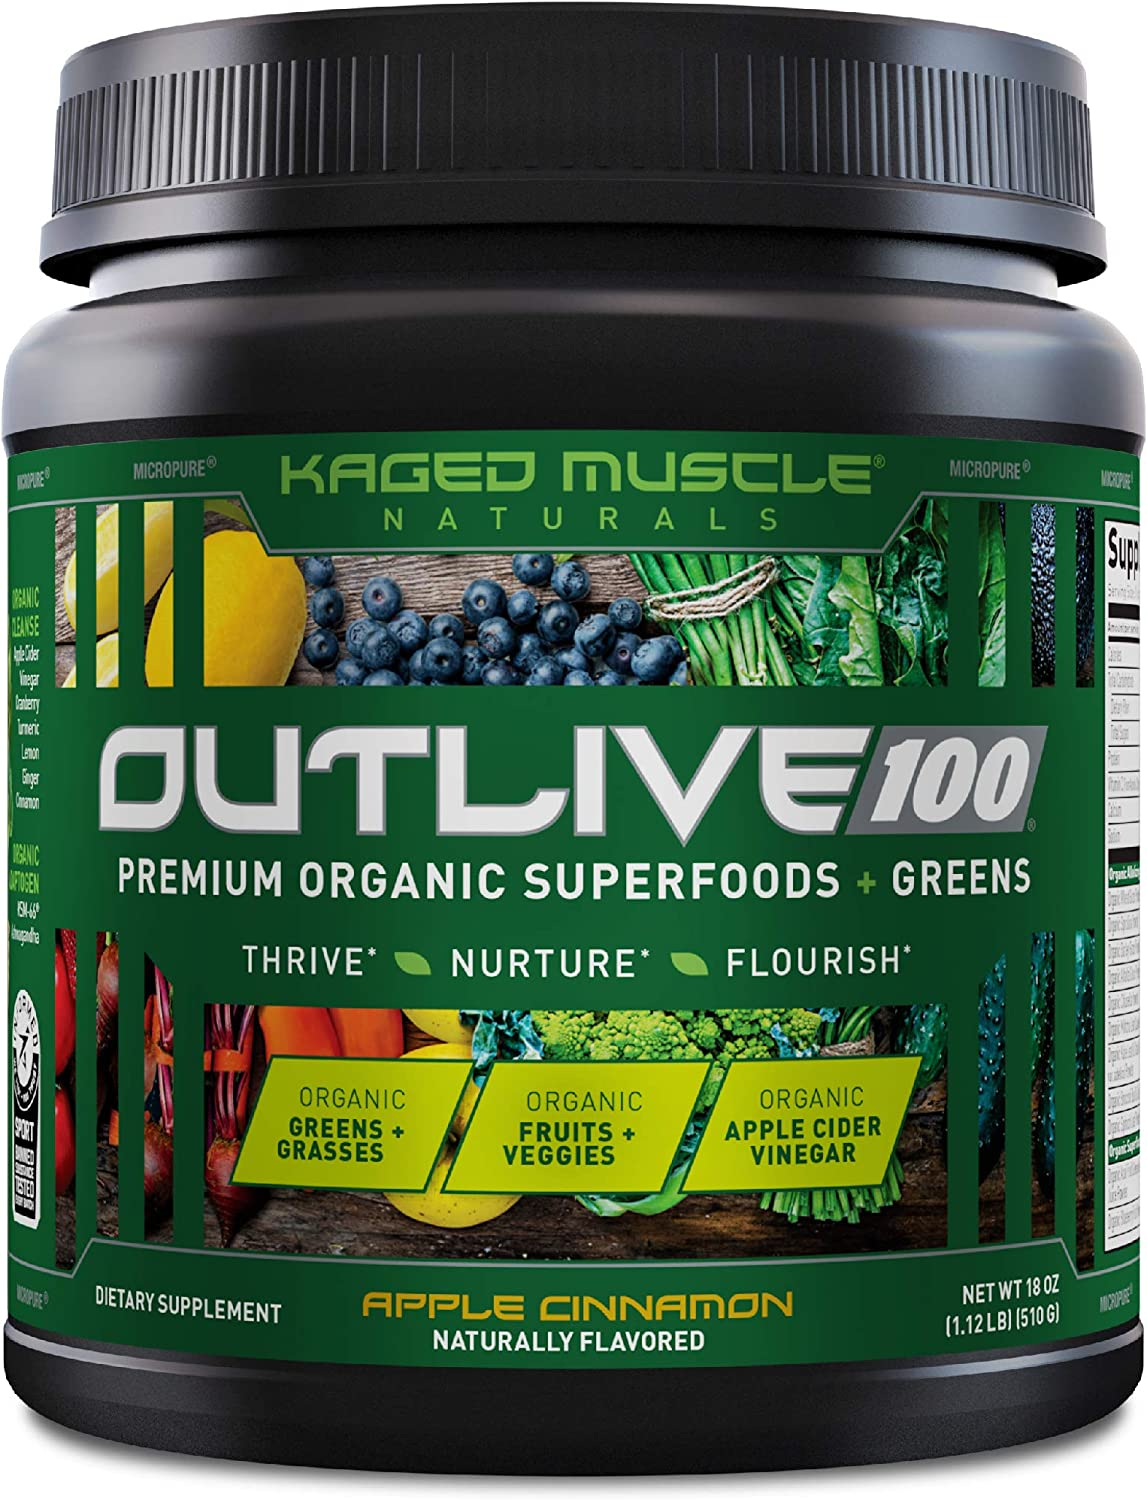 Kaged Muscle Outlive 100 Organic Superfoods and Greens Powder with Apple Cider Vinegar, Antioxidants, Adaptogen, Prebiotics,(Apple Cinnamon, 30 Servings)